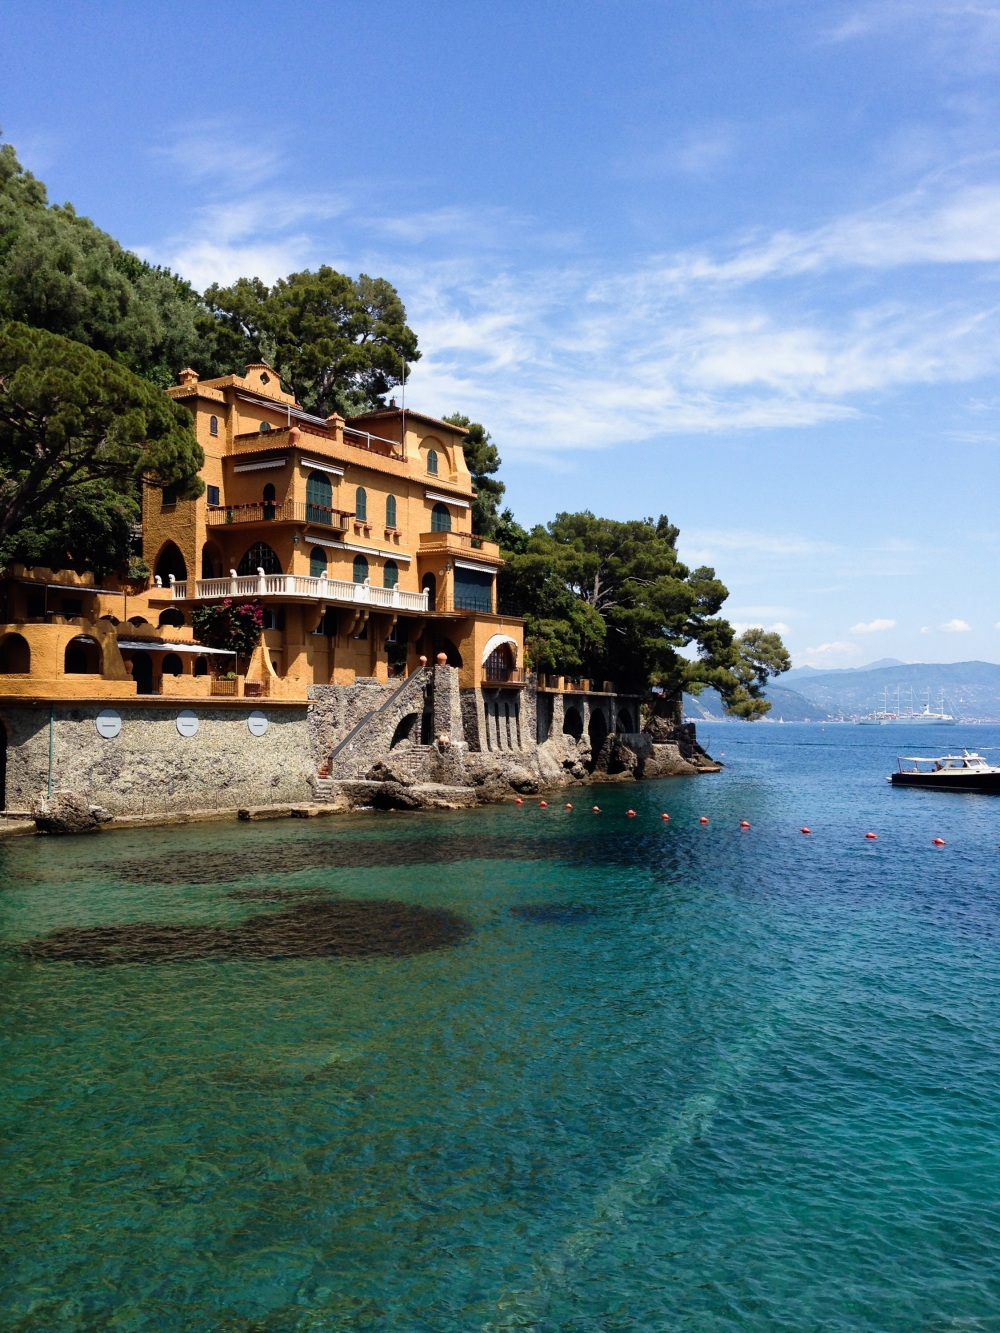 Portofino italy, backpack europe travel